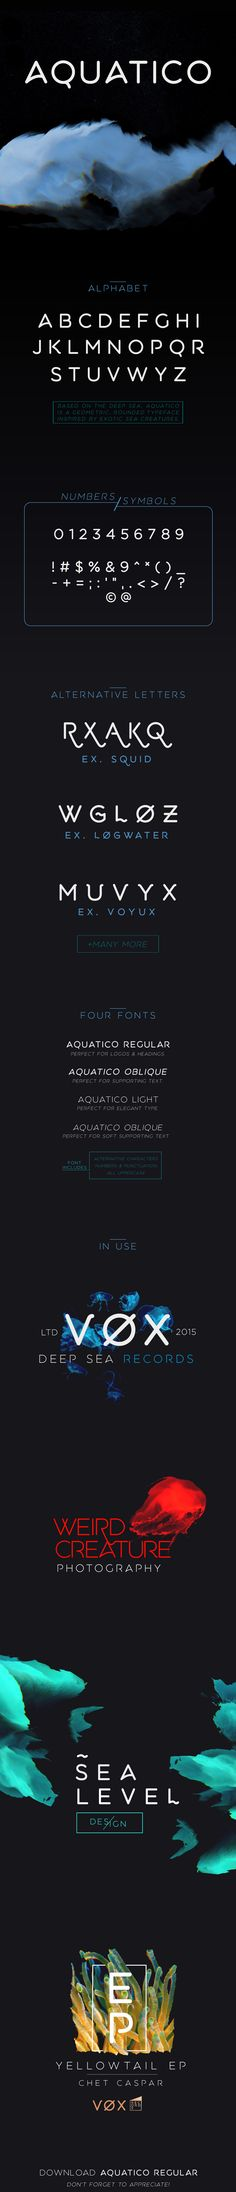 Aquatico - Free Typeface on Behance